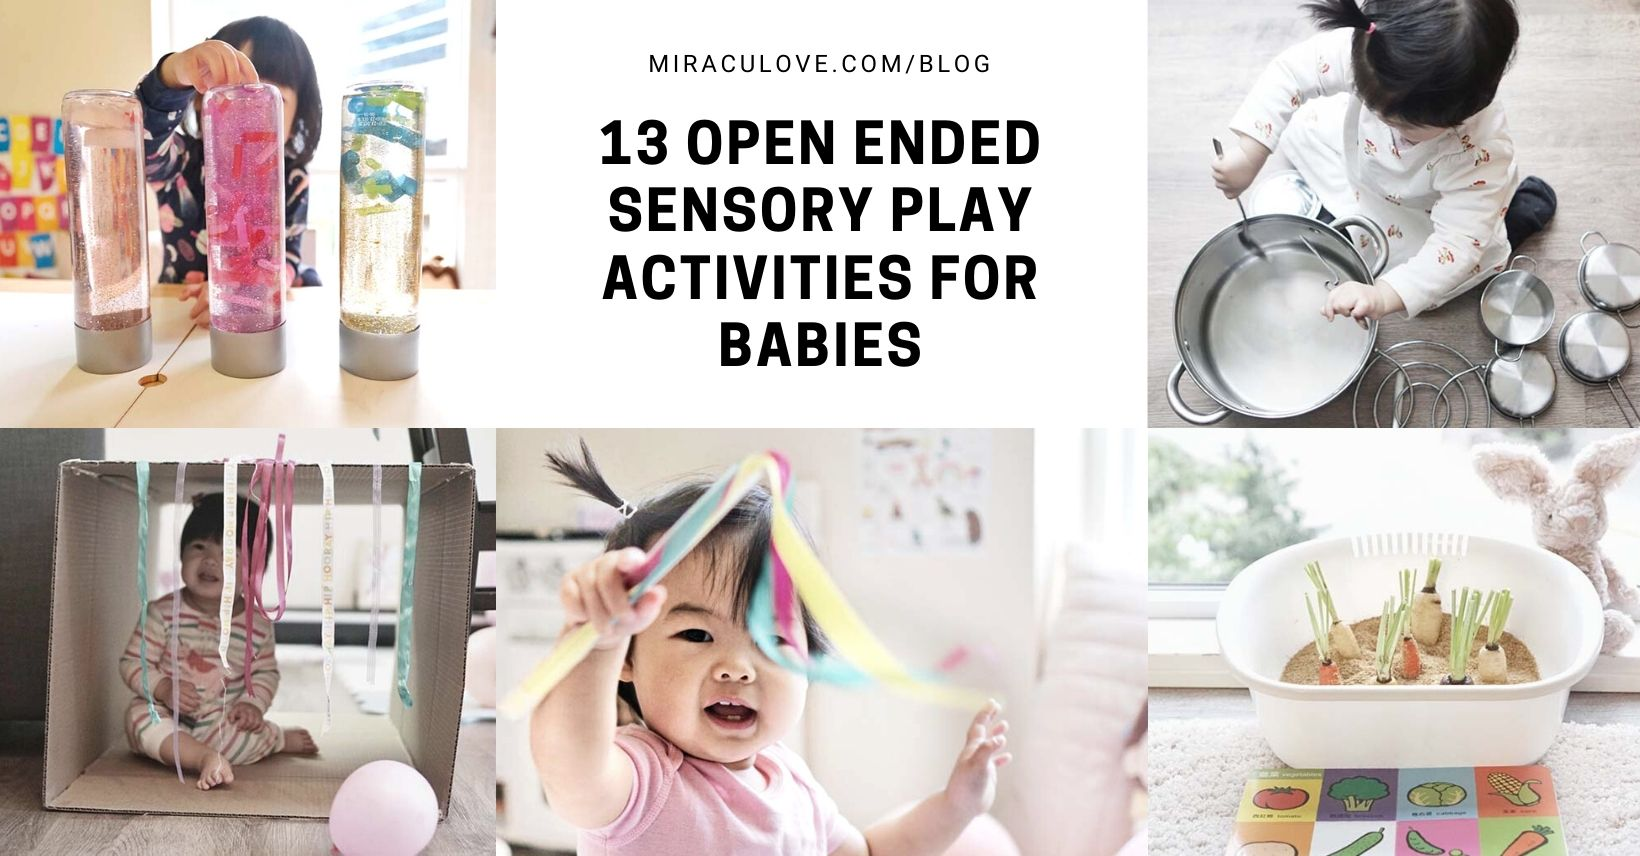 13 Open Ended Sensory Play Activities for Babies